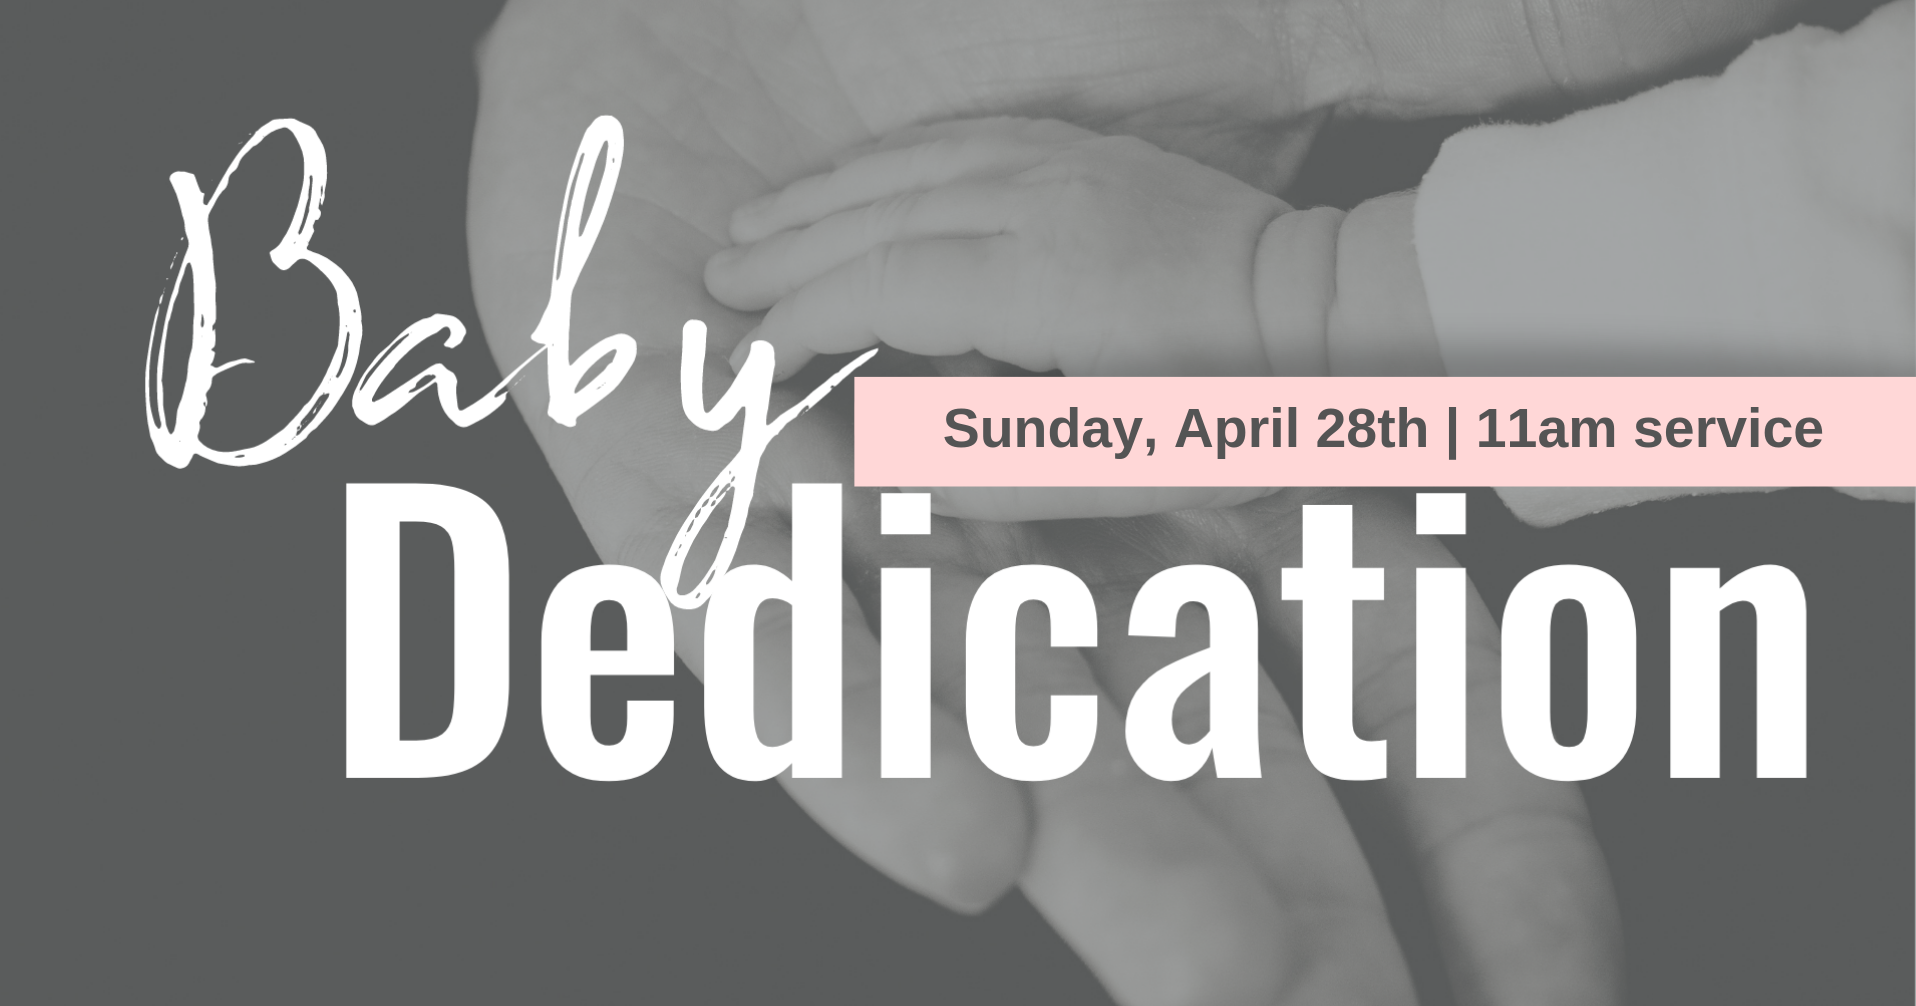 Sunday, April 28th at the 11am service copy.png